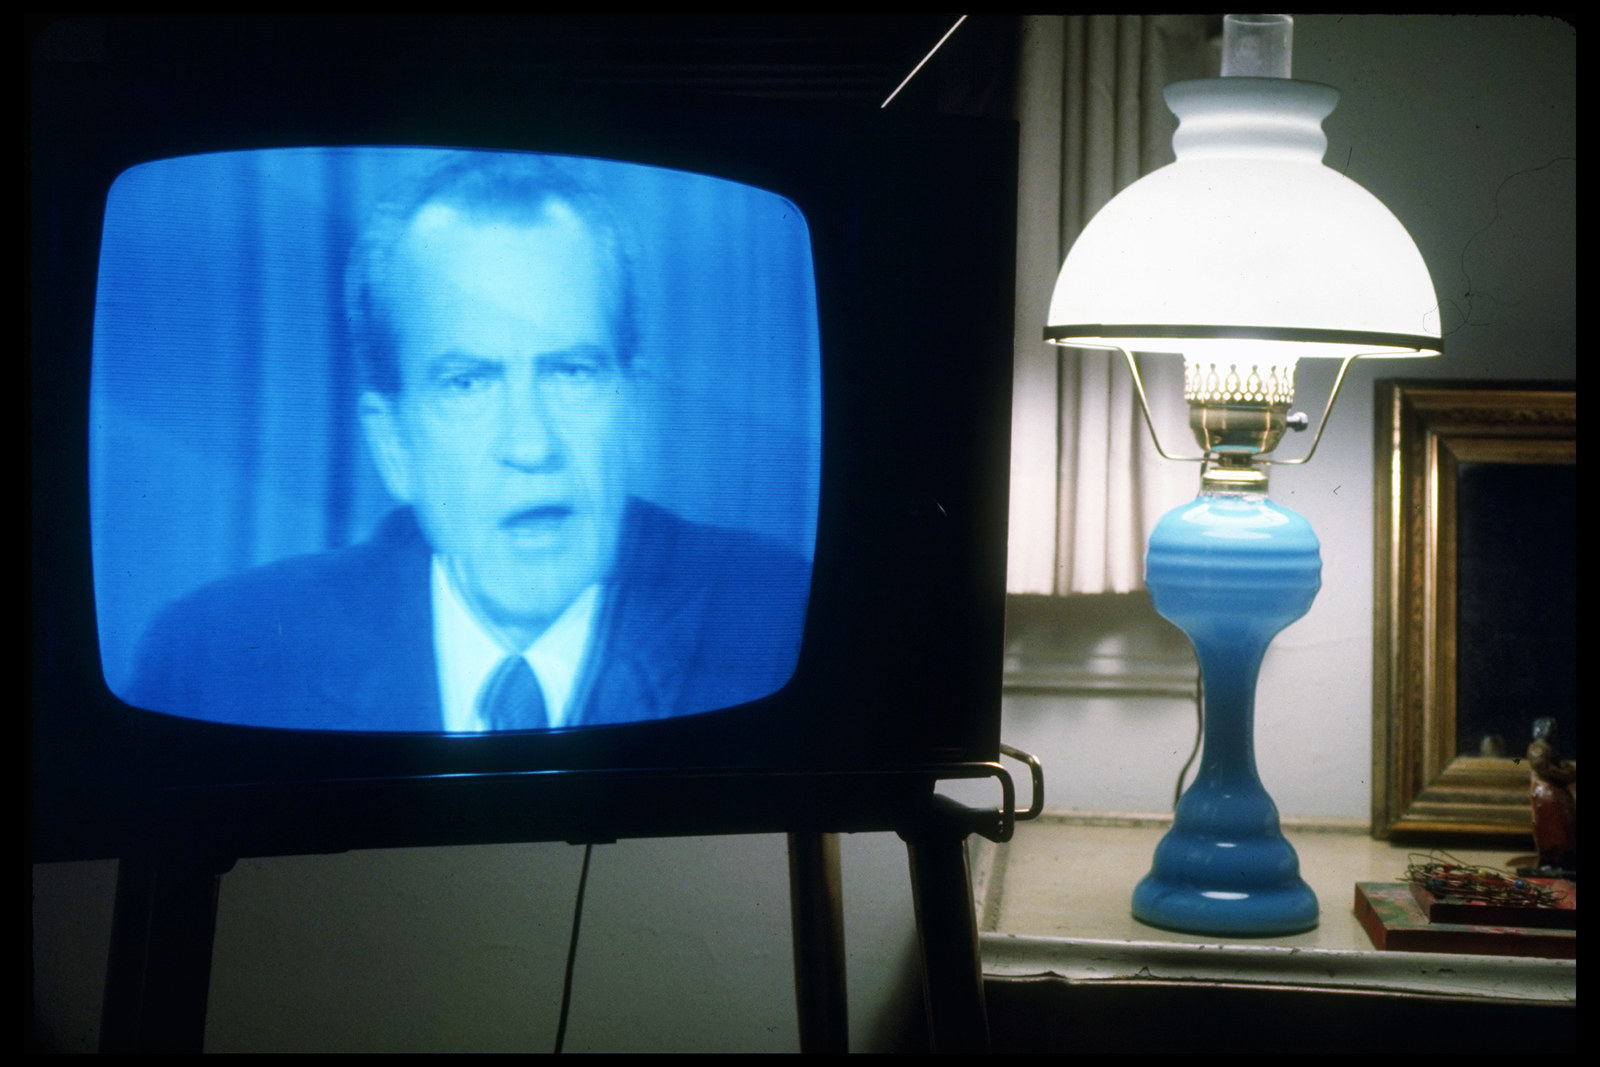 President Nixon announces his resignation on national TV during a speech from the Oval Office on Aug. 8, 1974.